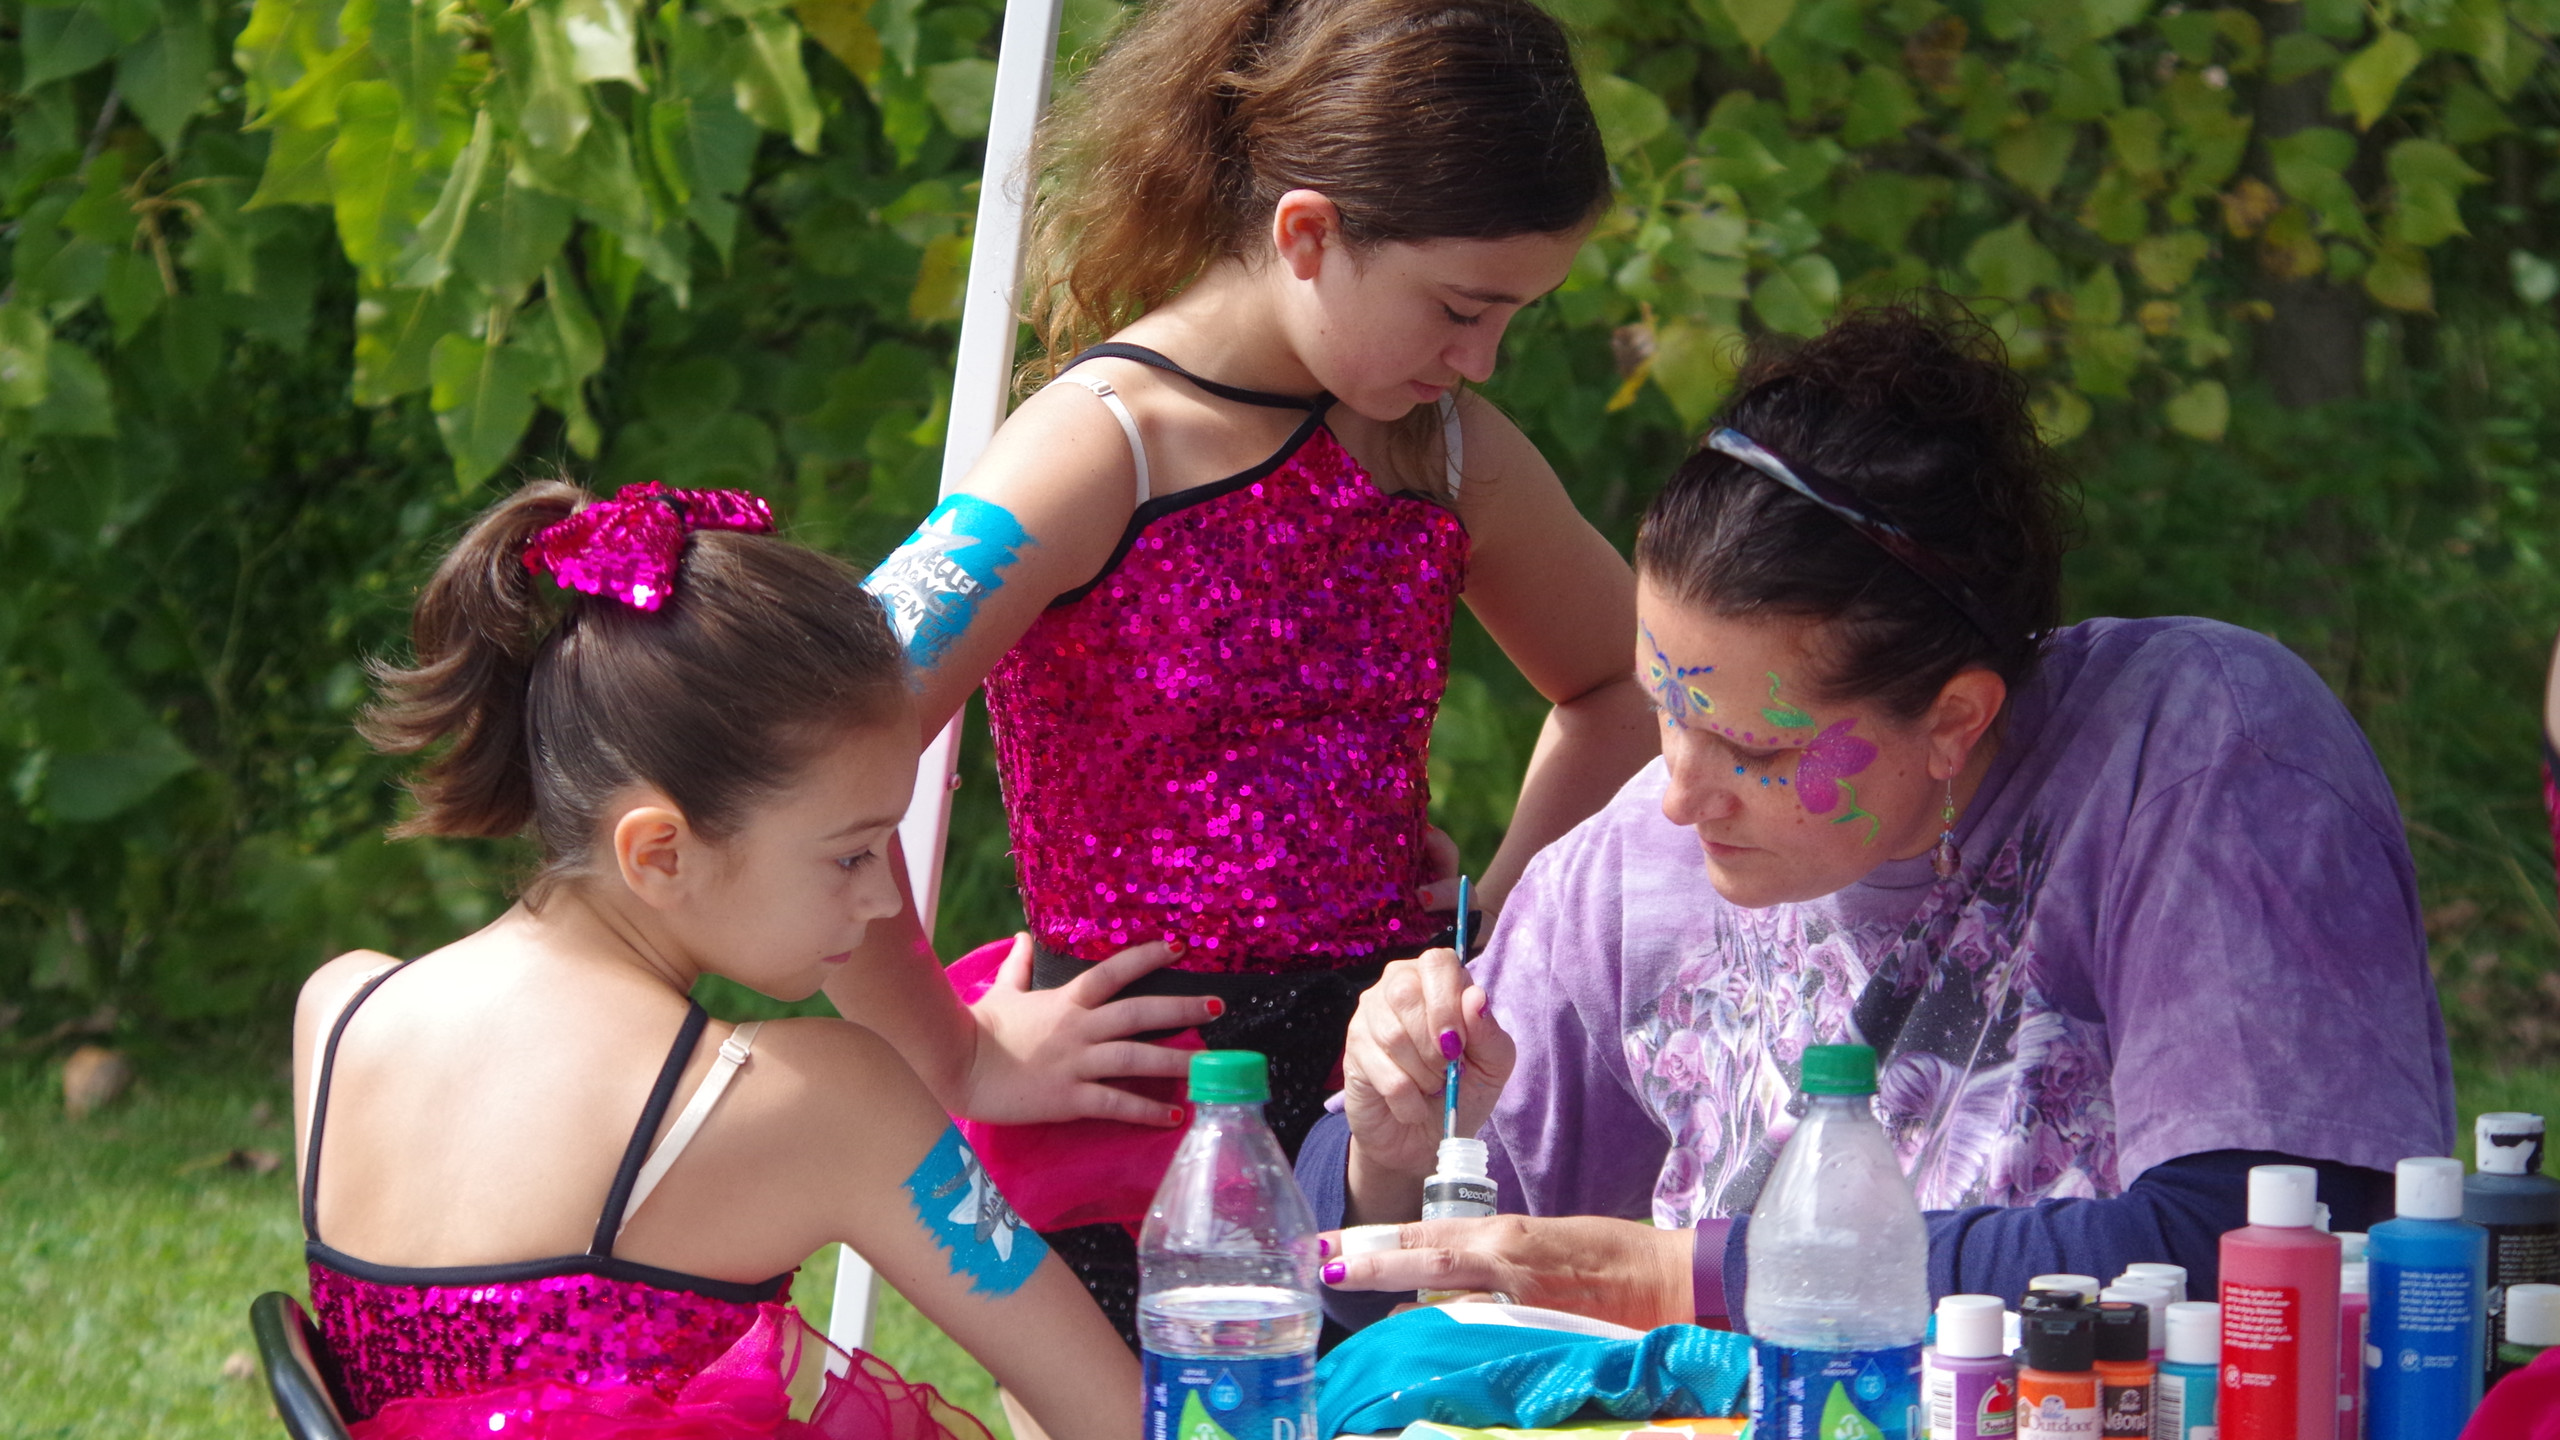 Face painting at VCC Street Fair 2017